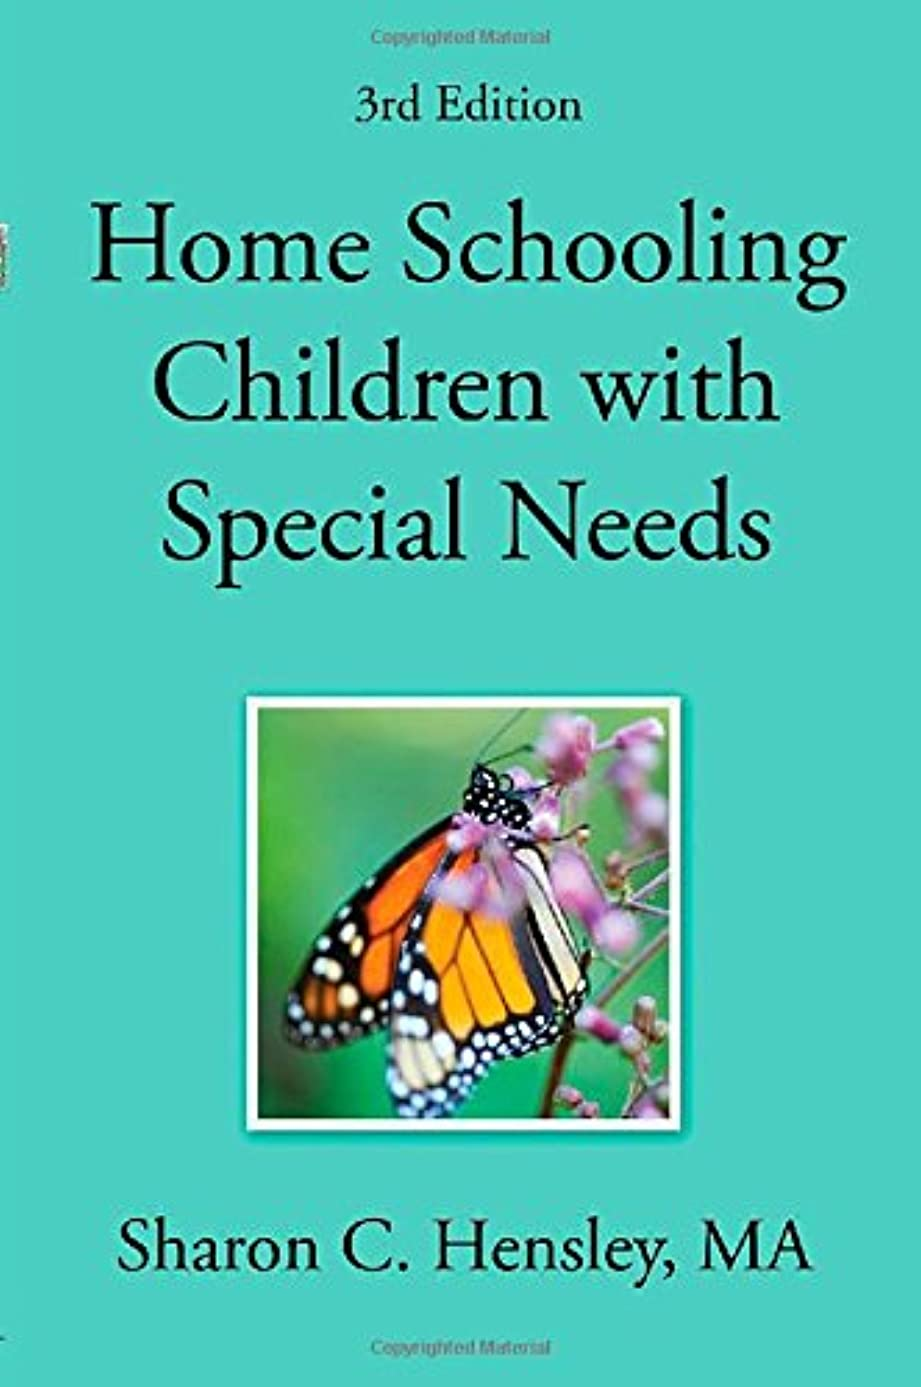 Home Schooling Children with Special Needs (3rd Edition)